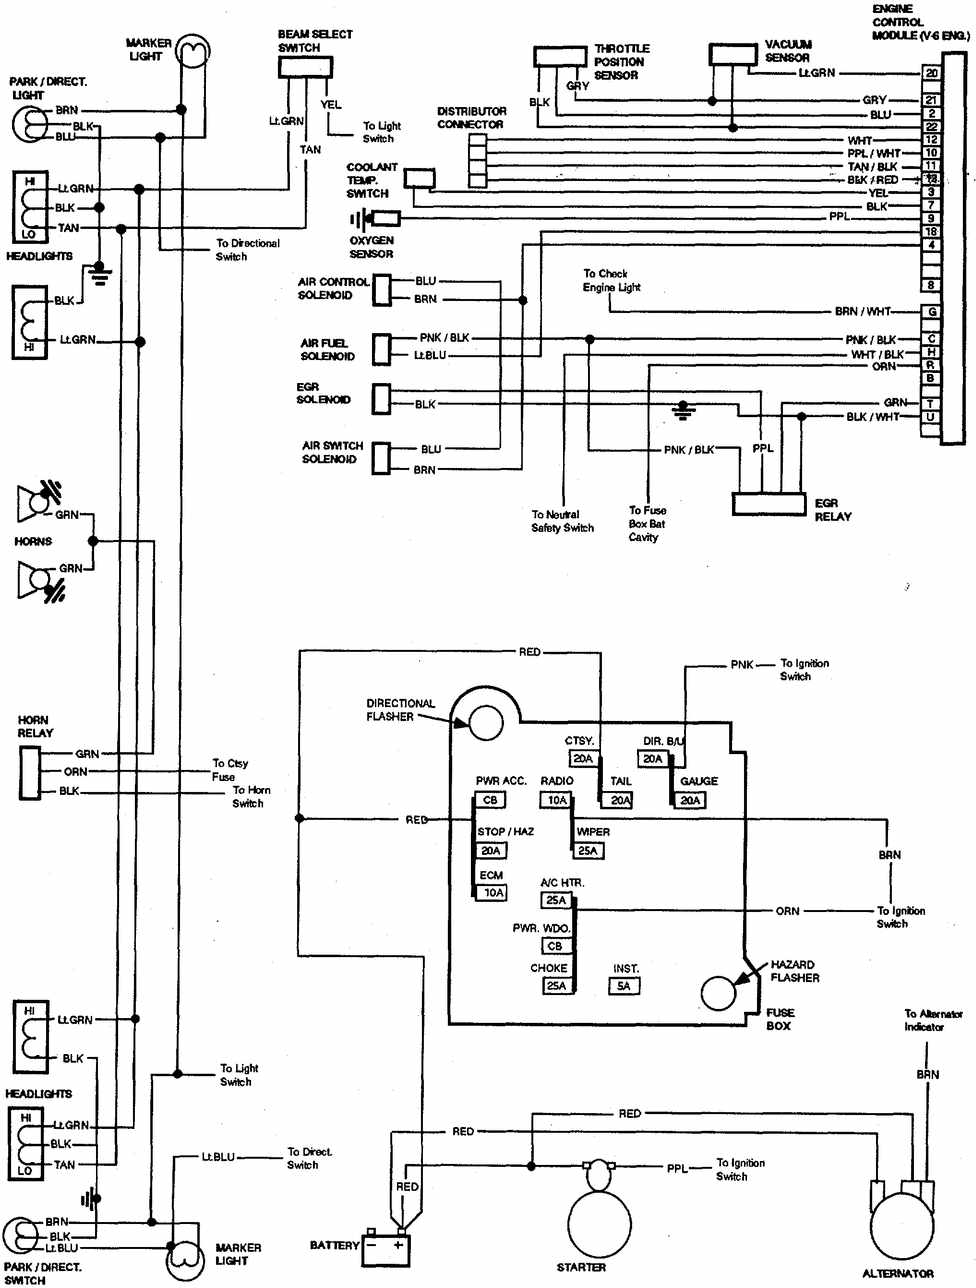 1986 chevy 350 wiring diagram